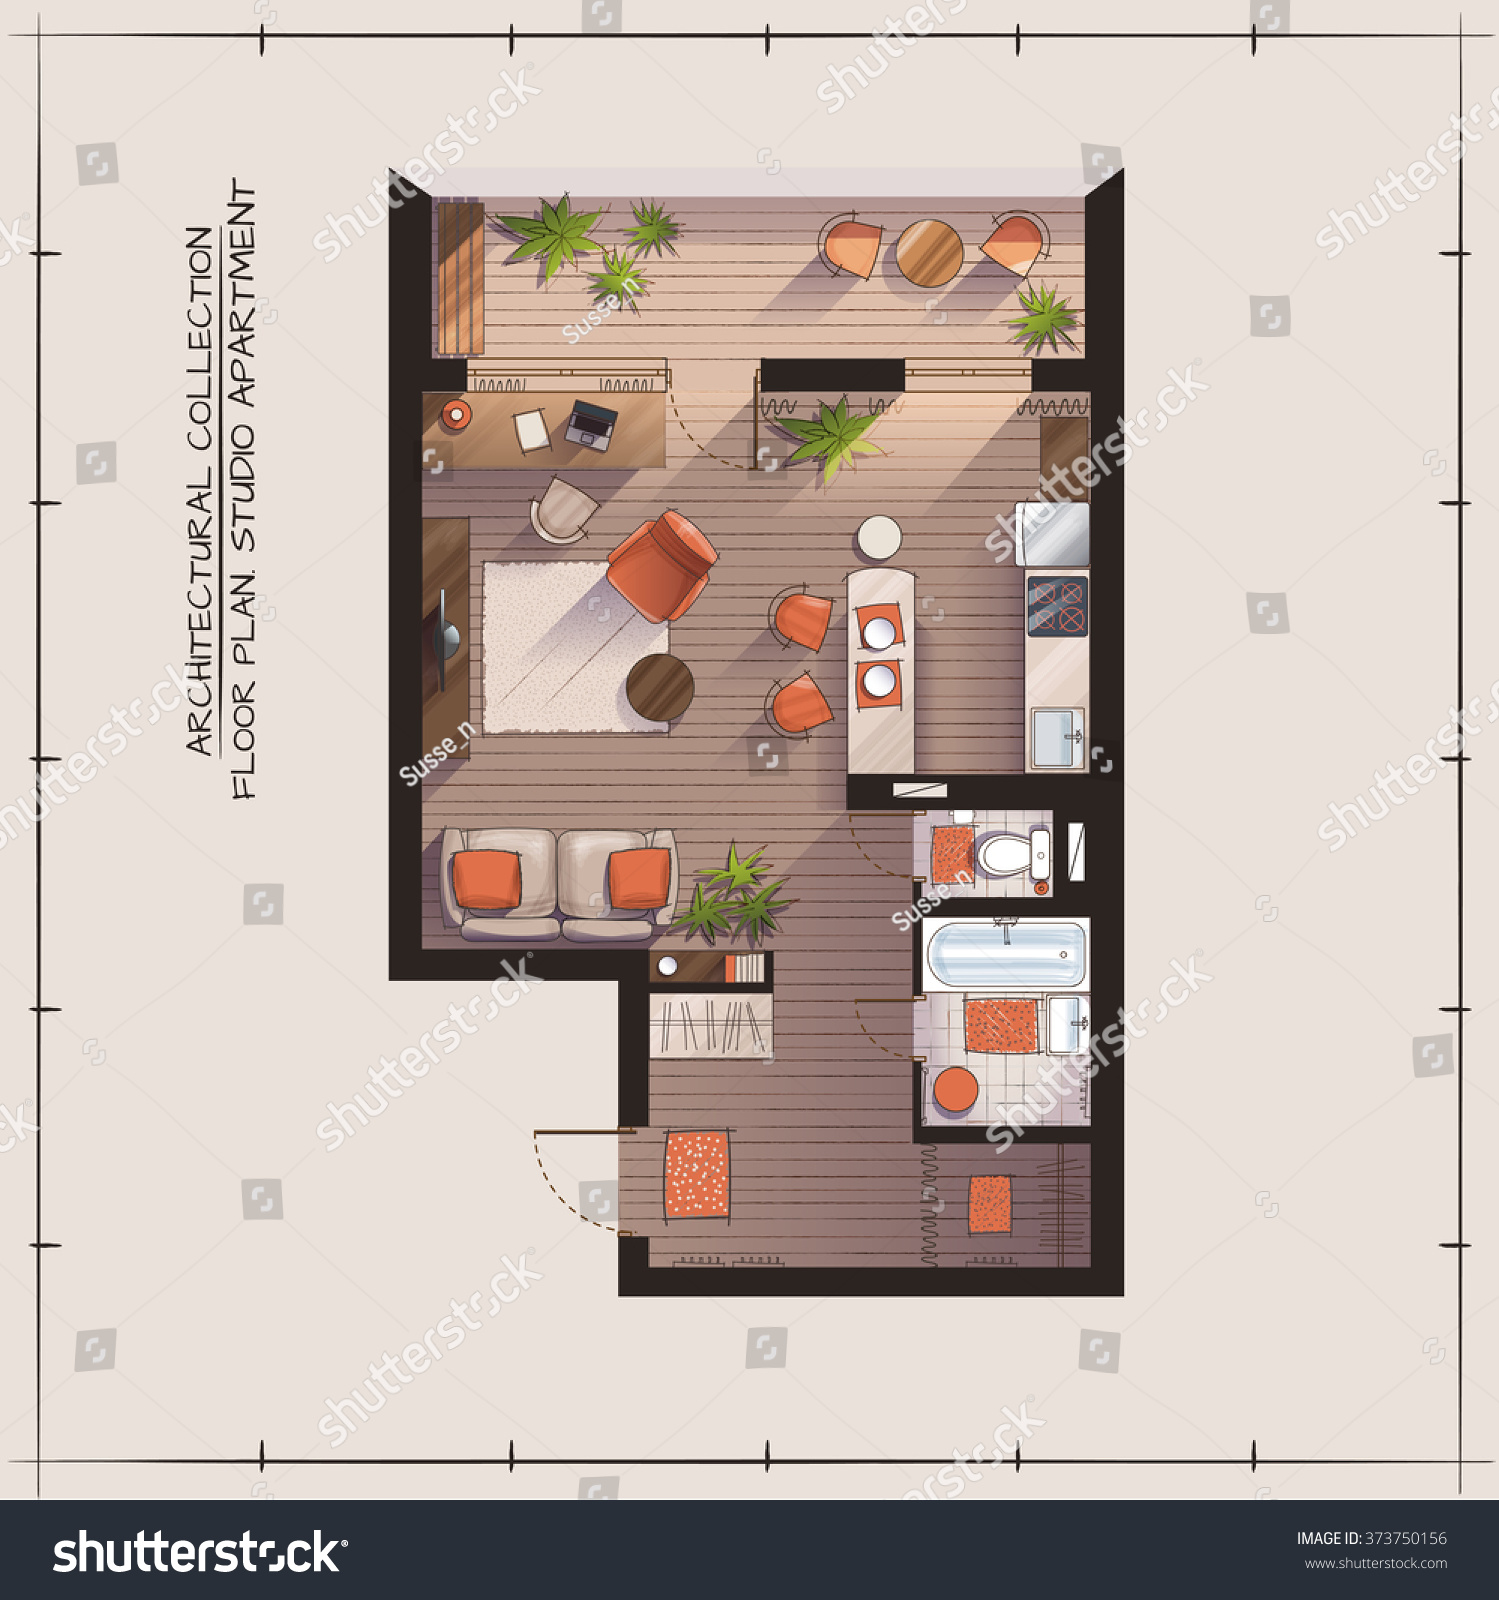 Architectural color floor plan studio apartment stock for Apartment floor plans vector